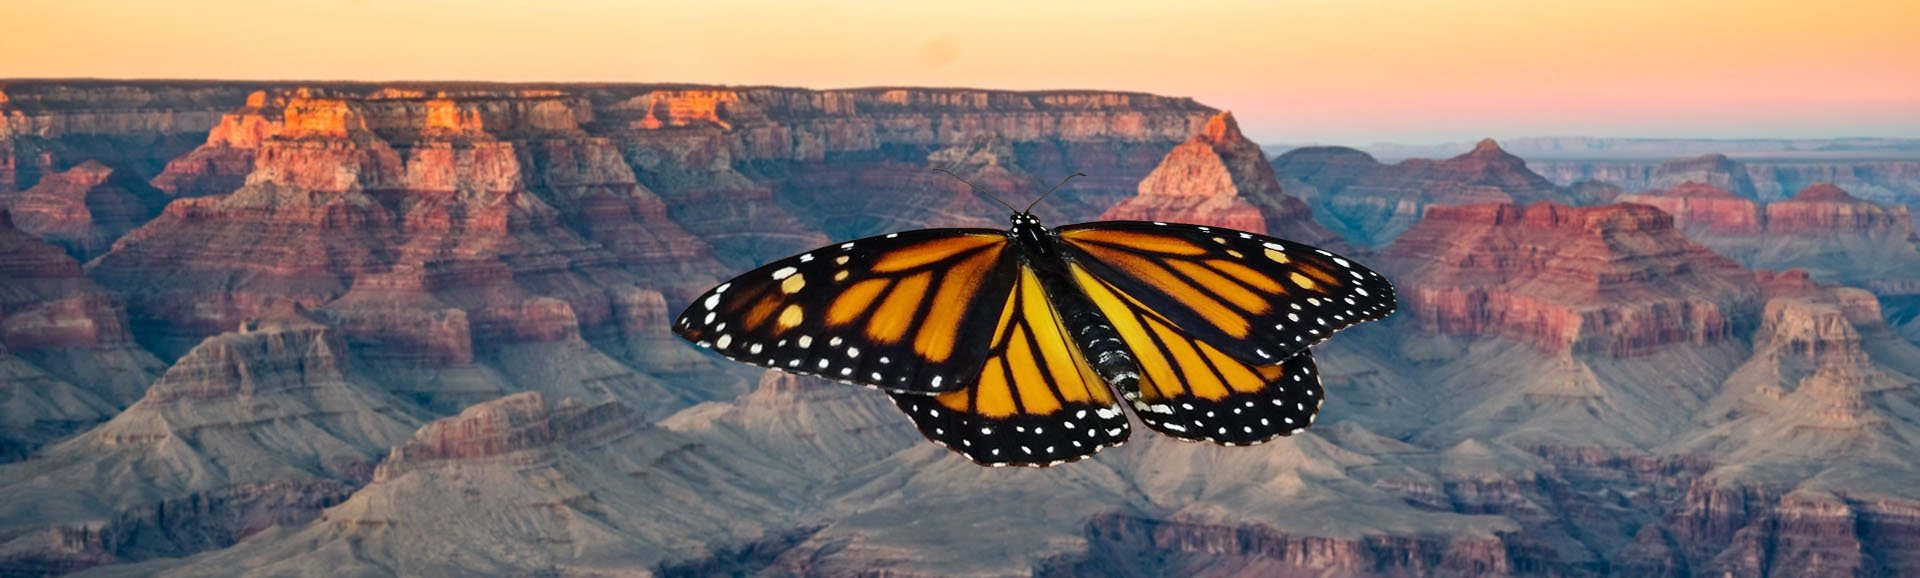 Monarch Butterfly over the Grand Canyon